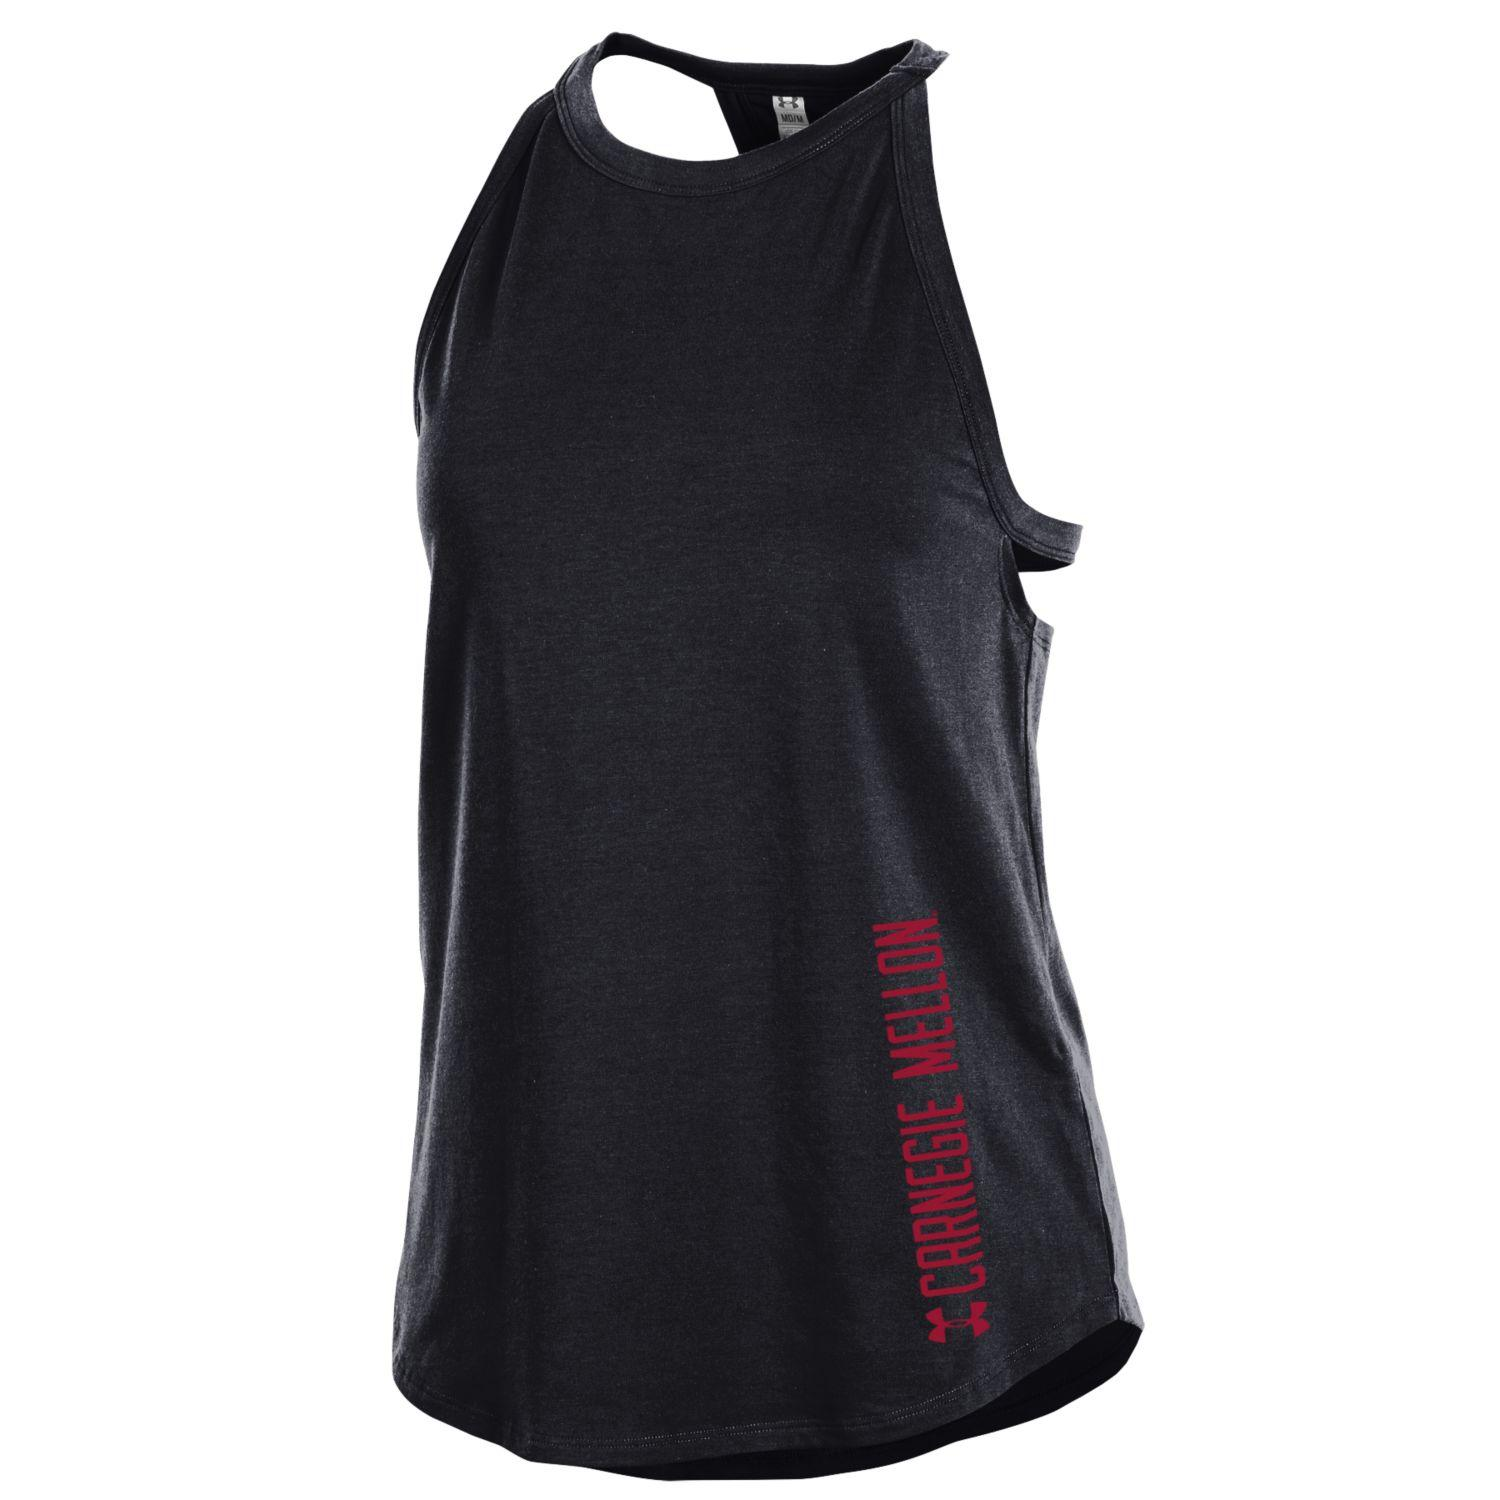 Under Armour Charged Tank: Black